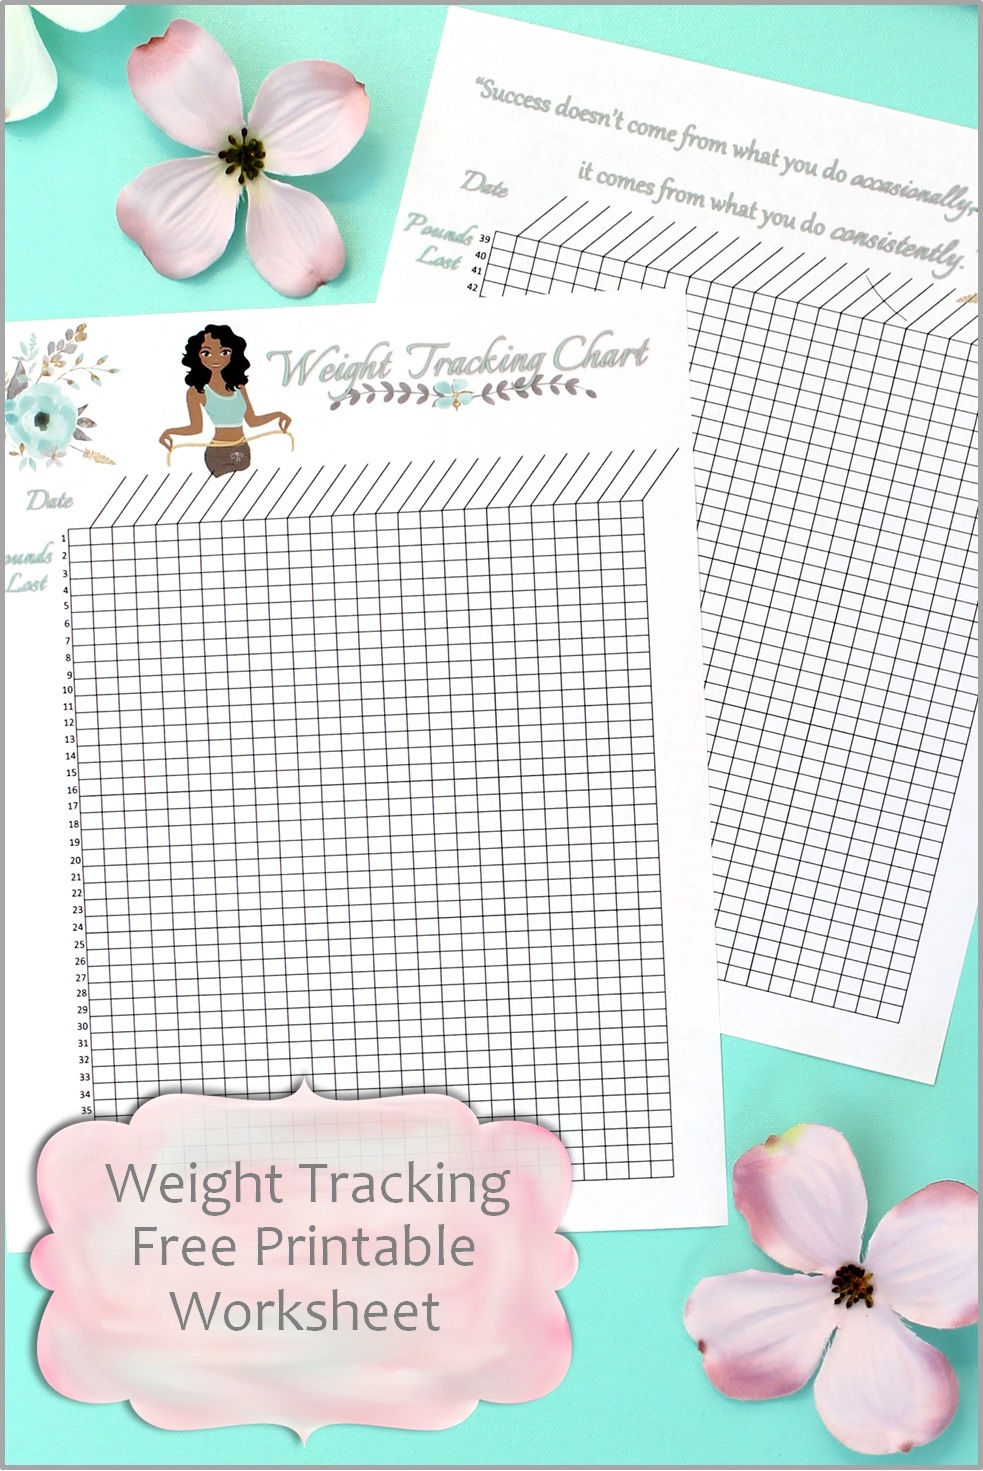 Weight Tracking Chart Free Printable Worksheet – Smart And Savvy Mom - Free Printable Weight Loss Tracker Chart